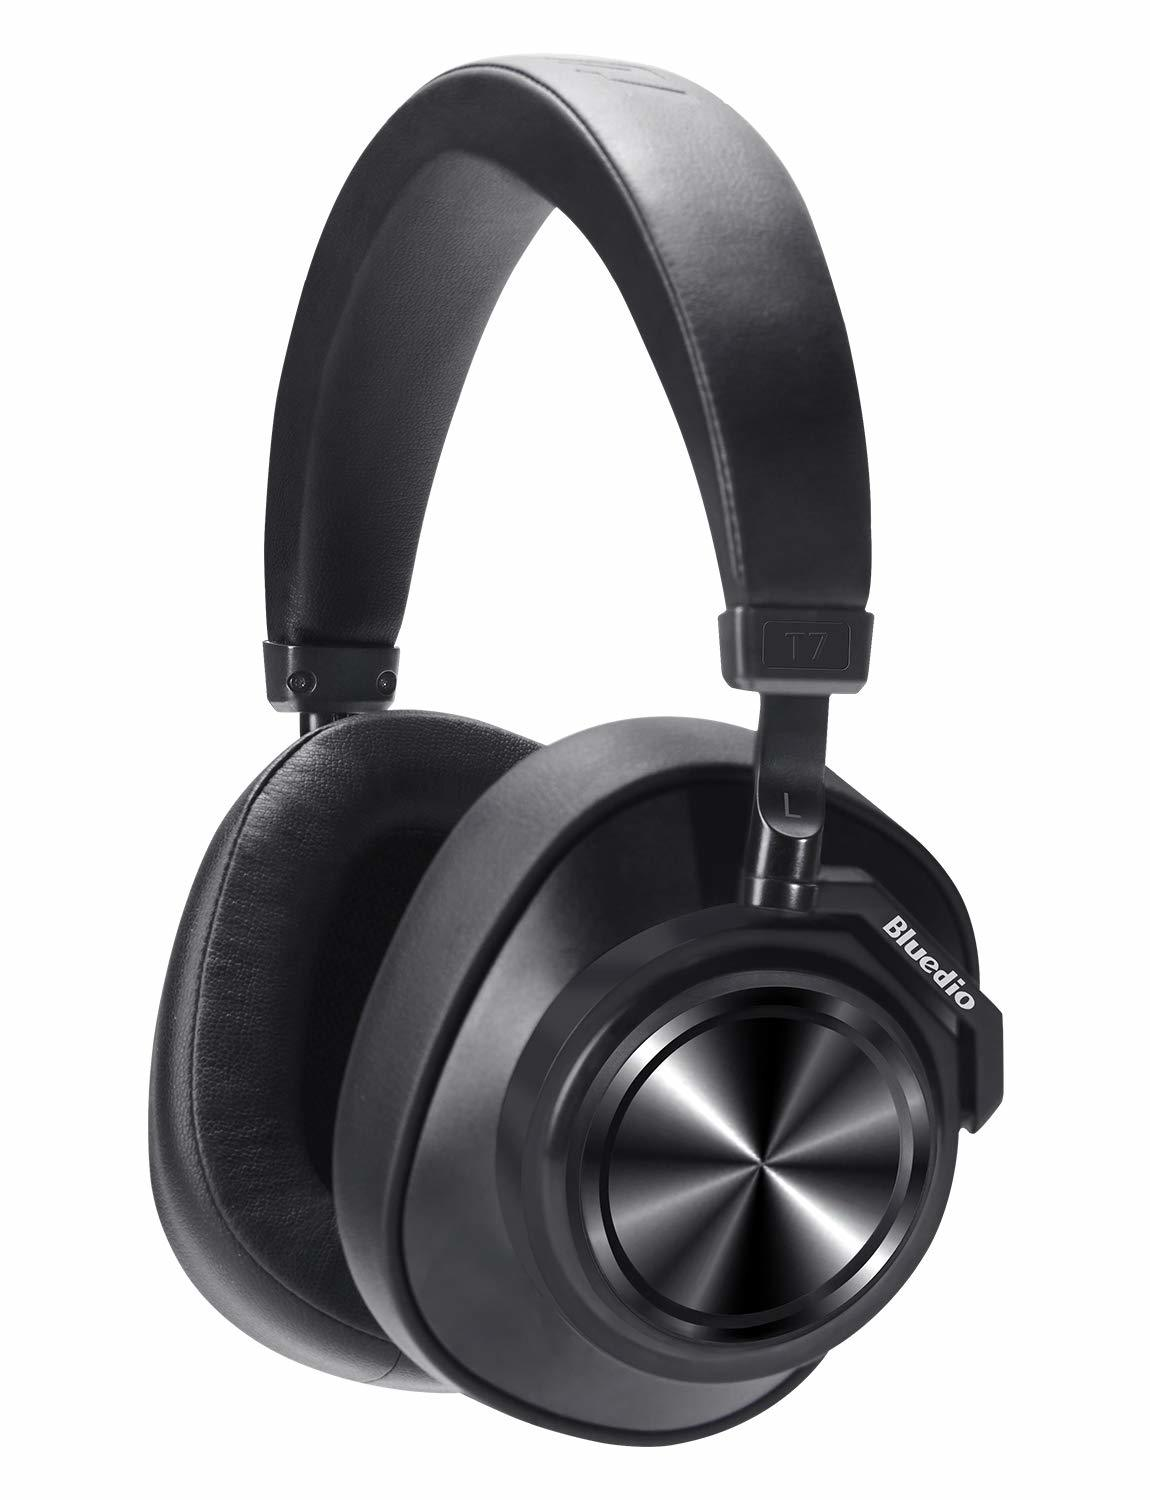 Bluedio T7 Bluetooth Custom Active Noise Canceling Over-Ear Headphones - Black image